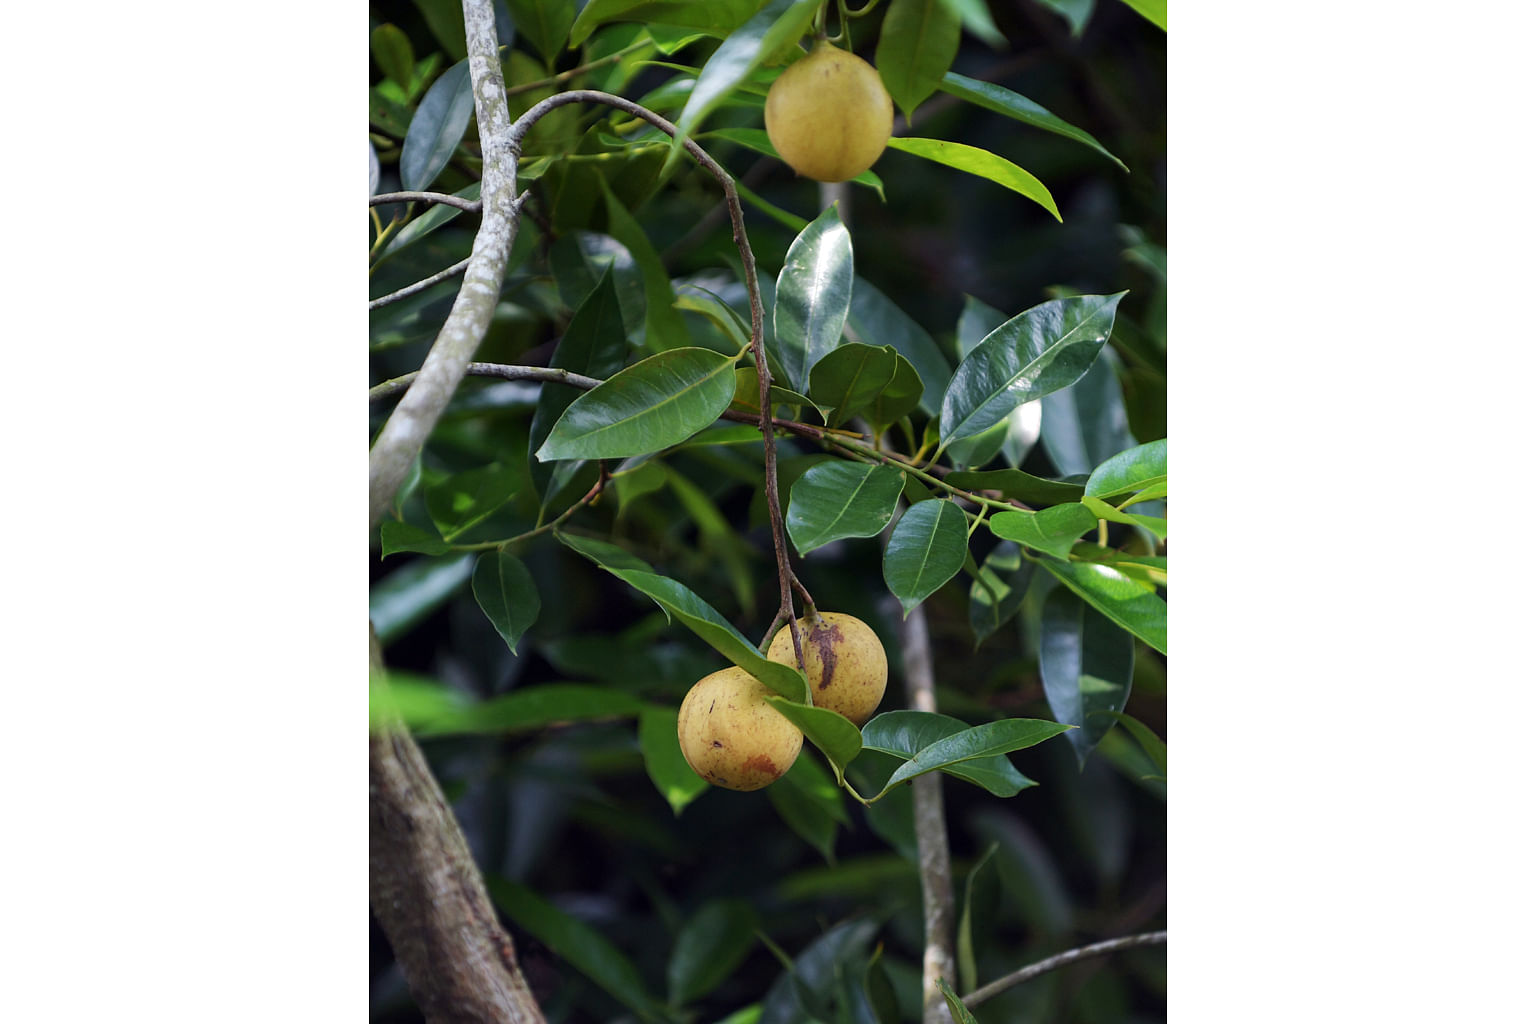 Nutmeg was a major spice crop in Singapore in the 1840s before disease destroyed plantations in the 1860s. But three trees at the gardens, each over 100 years old, have thrived. In the 1800s, the area around Orchard Road was occupied by n